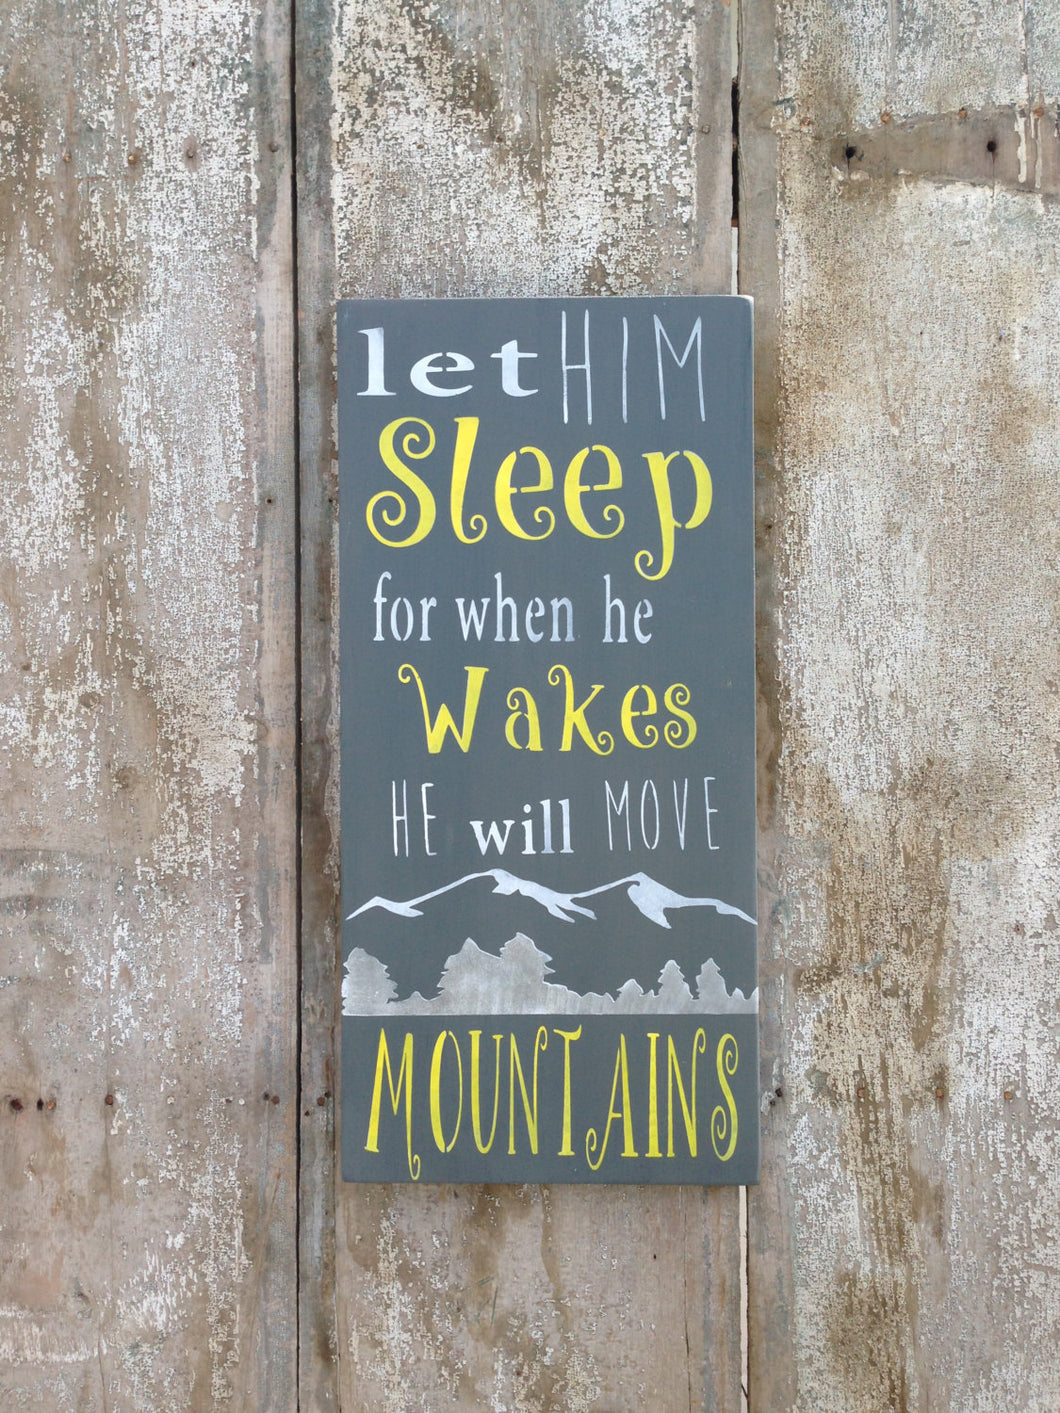 Nursery Decor, Children's Bedroom Decor- Let Him Sleep for when he wakes he will move Mountains - Rustic Wood Sign - Children's wall decor